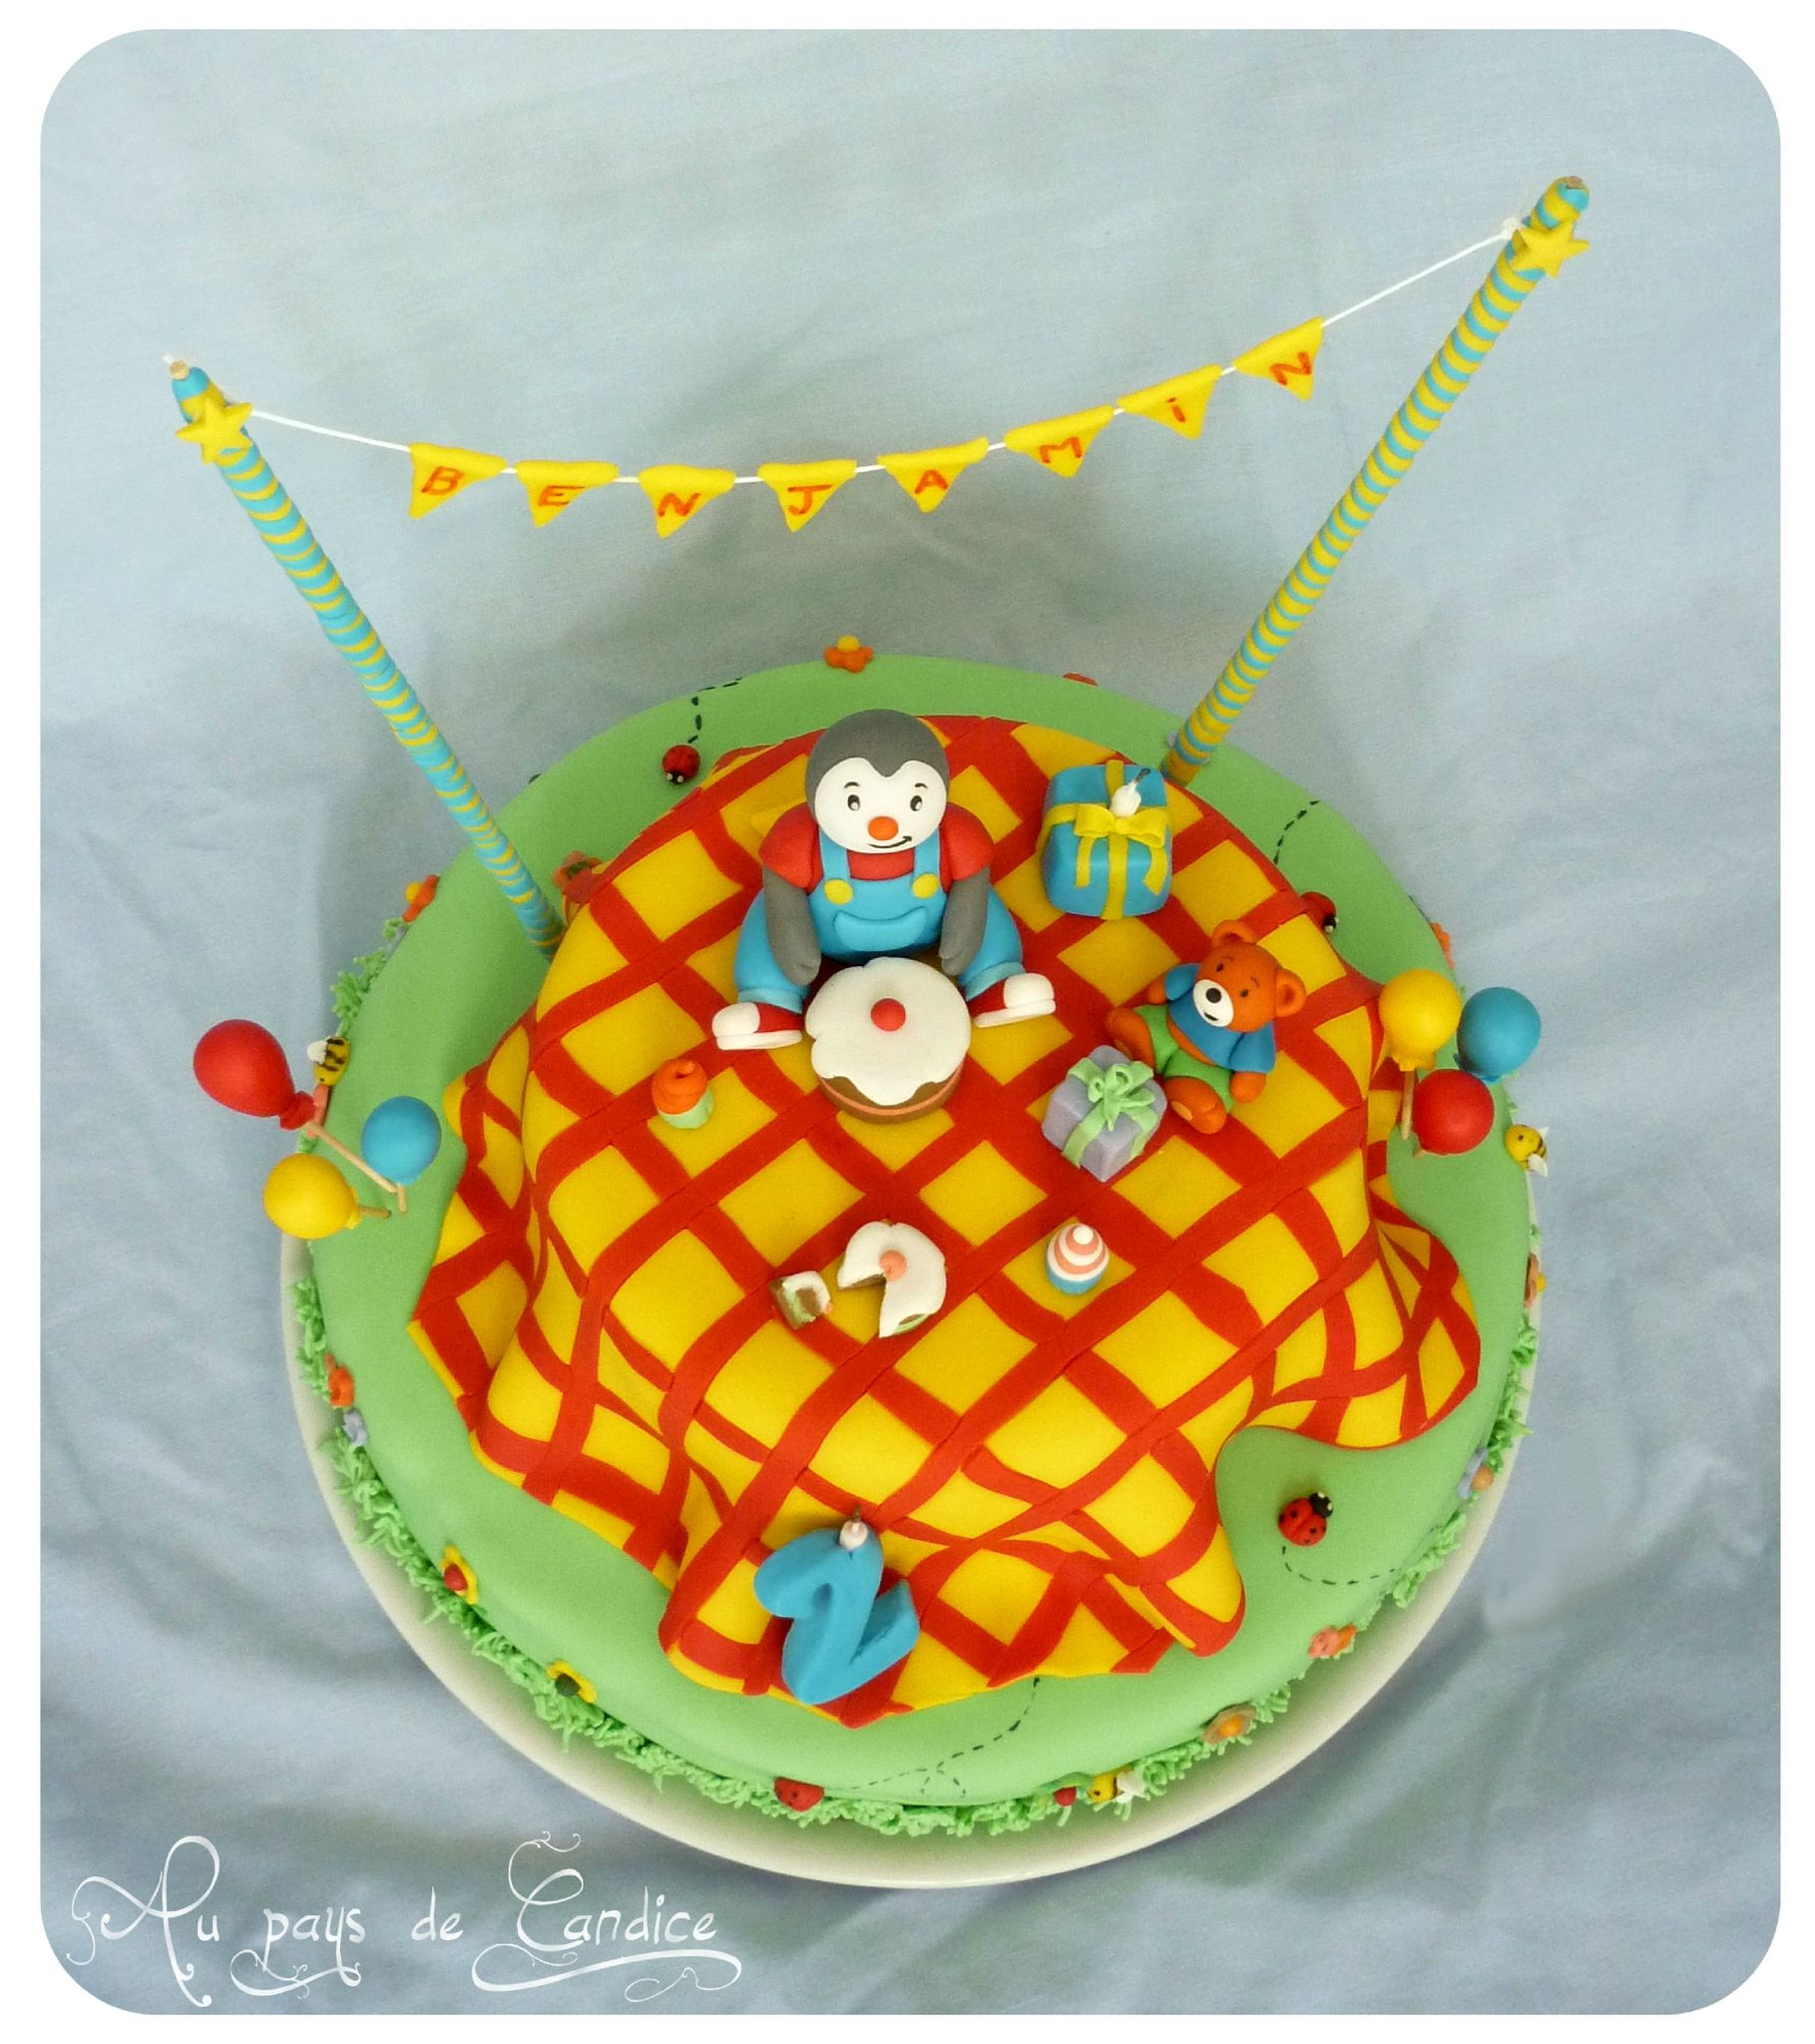 1000 images about gateau tchoupi on pinterest - Gateau anniversaire tchoupi ...